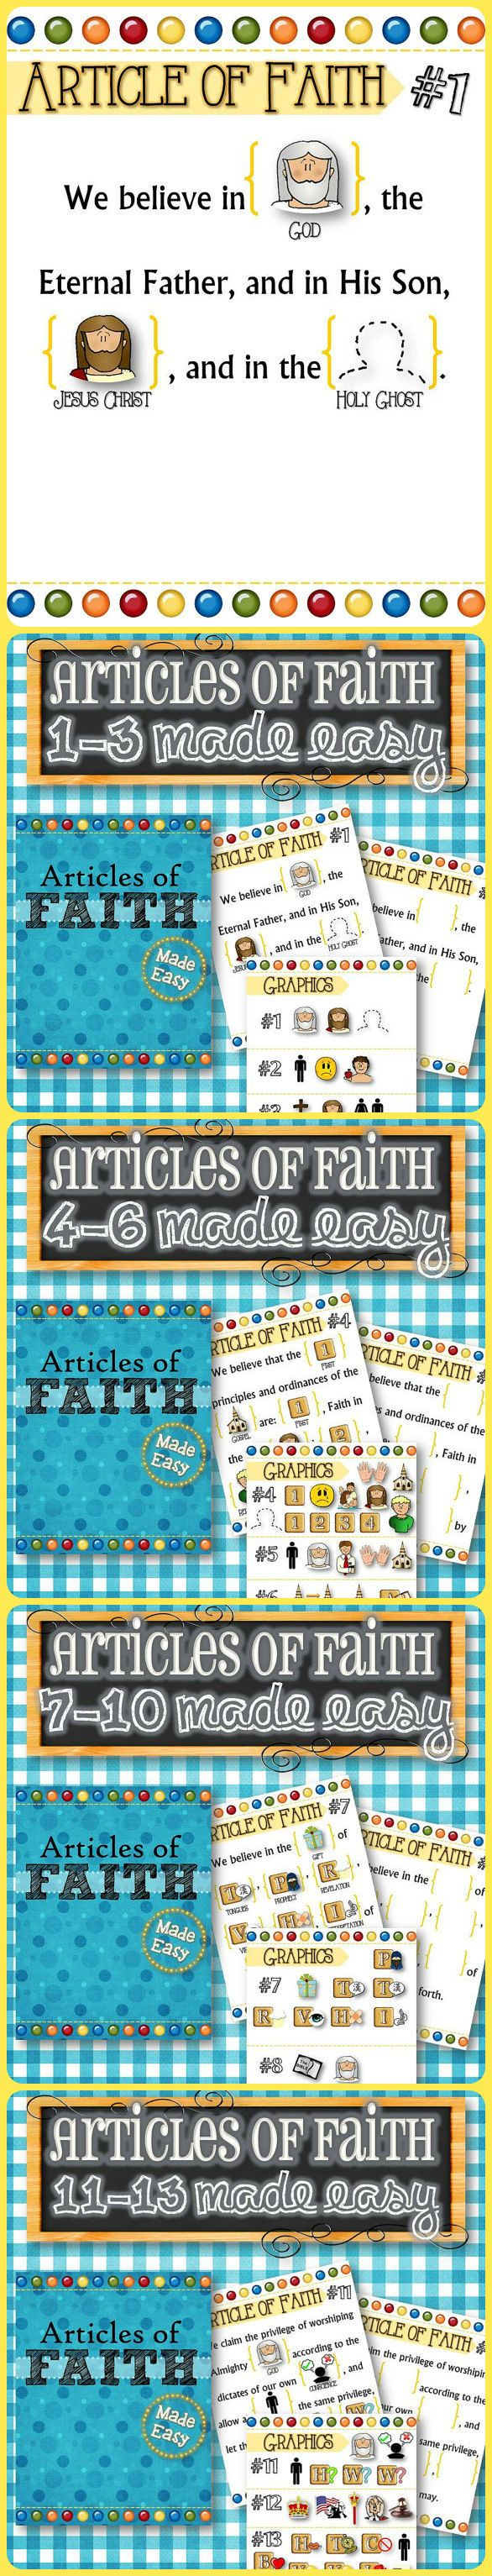 """Articles of Faith 1-13 Made Easy! Easy enough for even toddlers and small children to learn and understand the concepts. Each Article comes with gospel related pictures to help little ones memorize the words. Each Article of Faith also comes with a """"blank"""" version so the child can recite from memory and place the pictures in the right order. My 3 year old had #1 and #2 memorized within a week! Good luck! **FREEBIE INCLUDED**"""